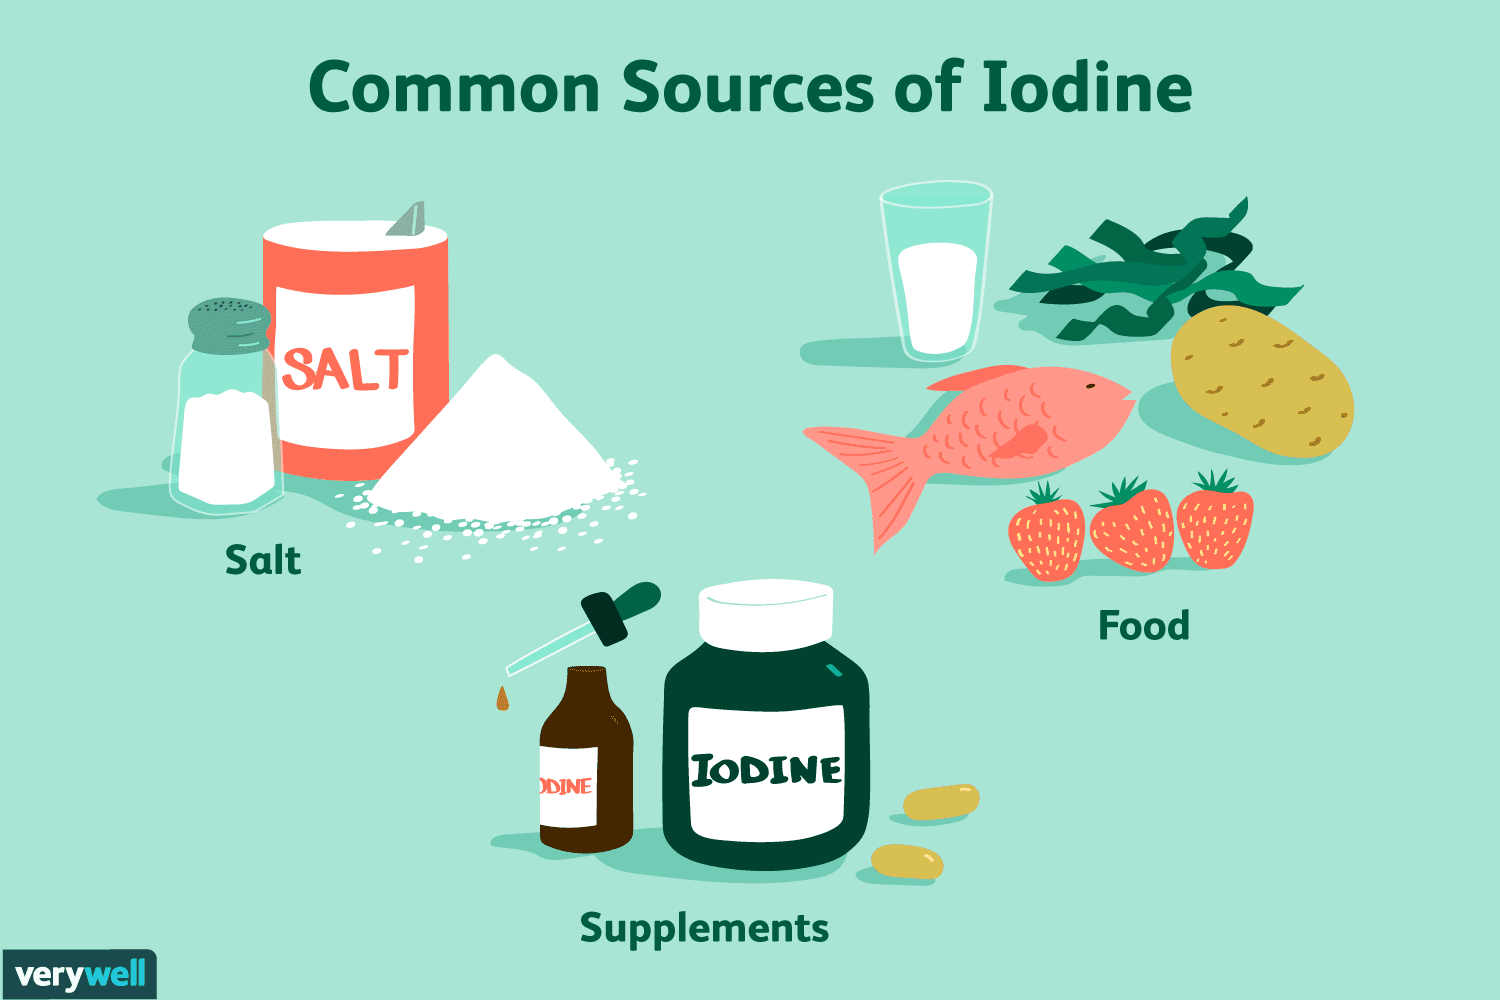 Iodine: Benefits, Side Effects, and Preparations